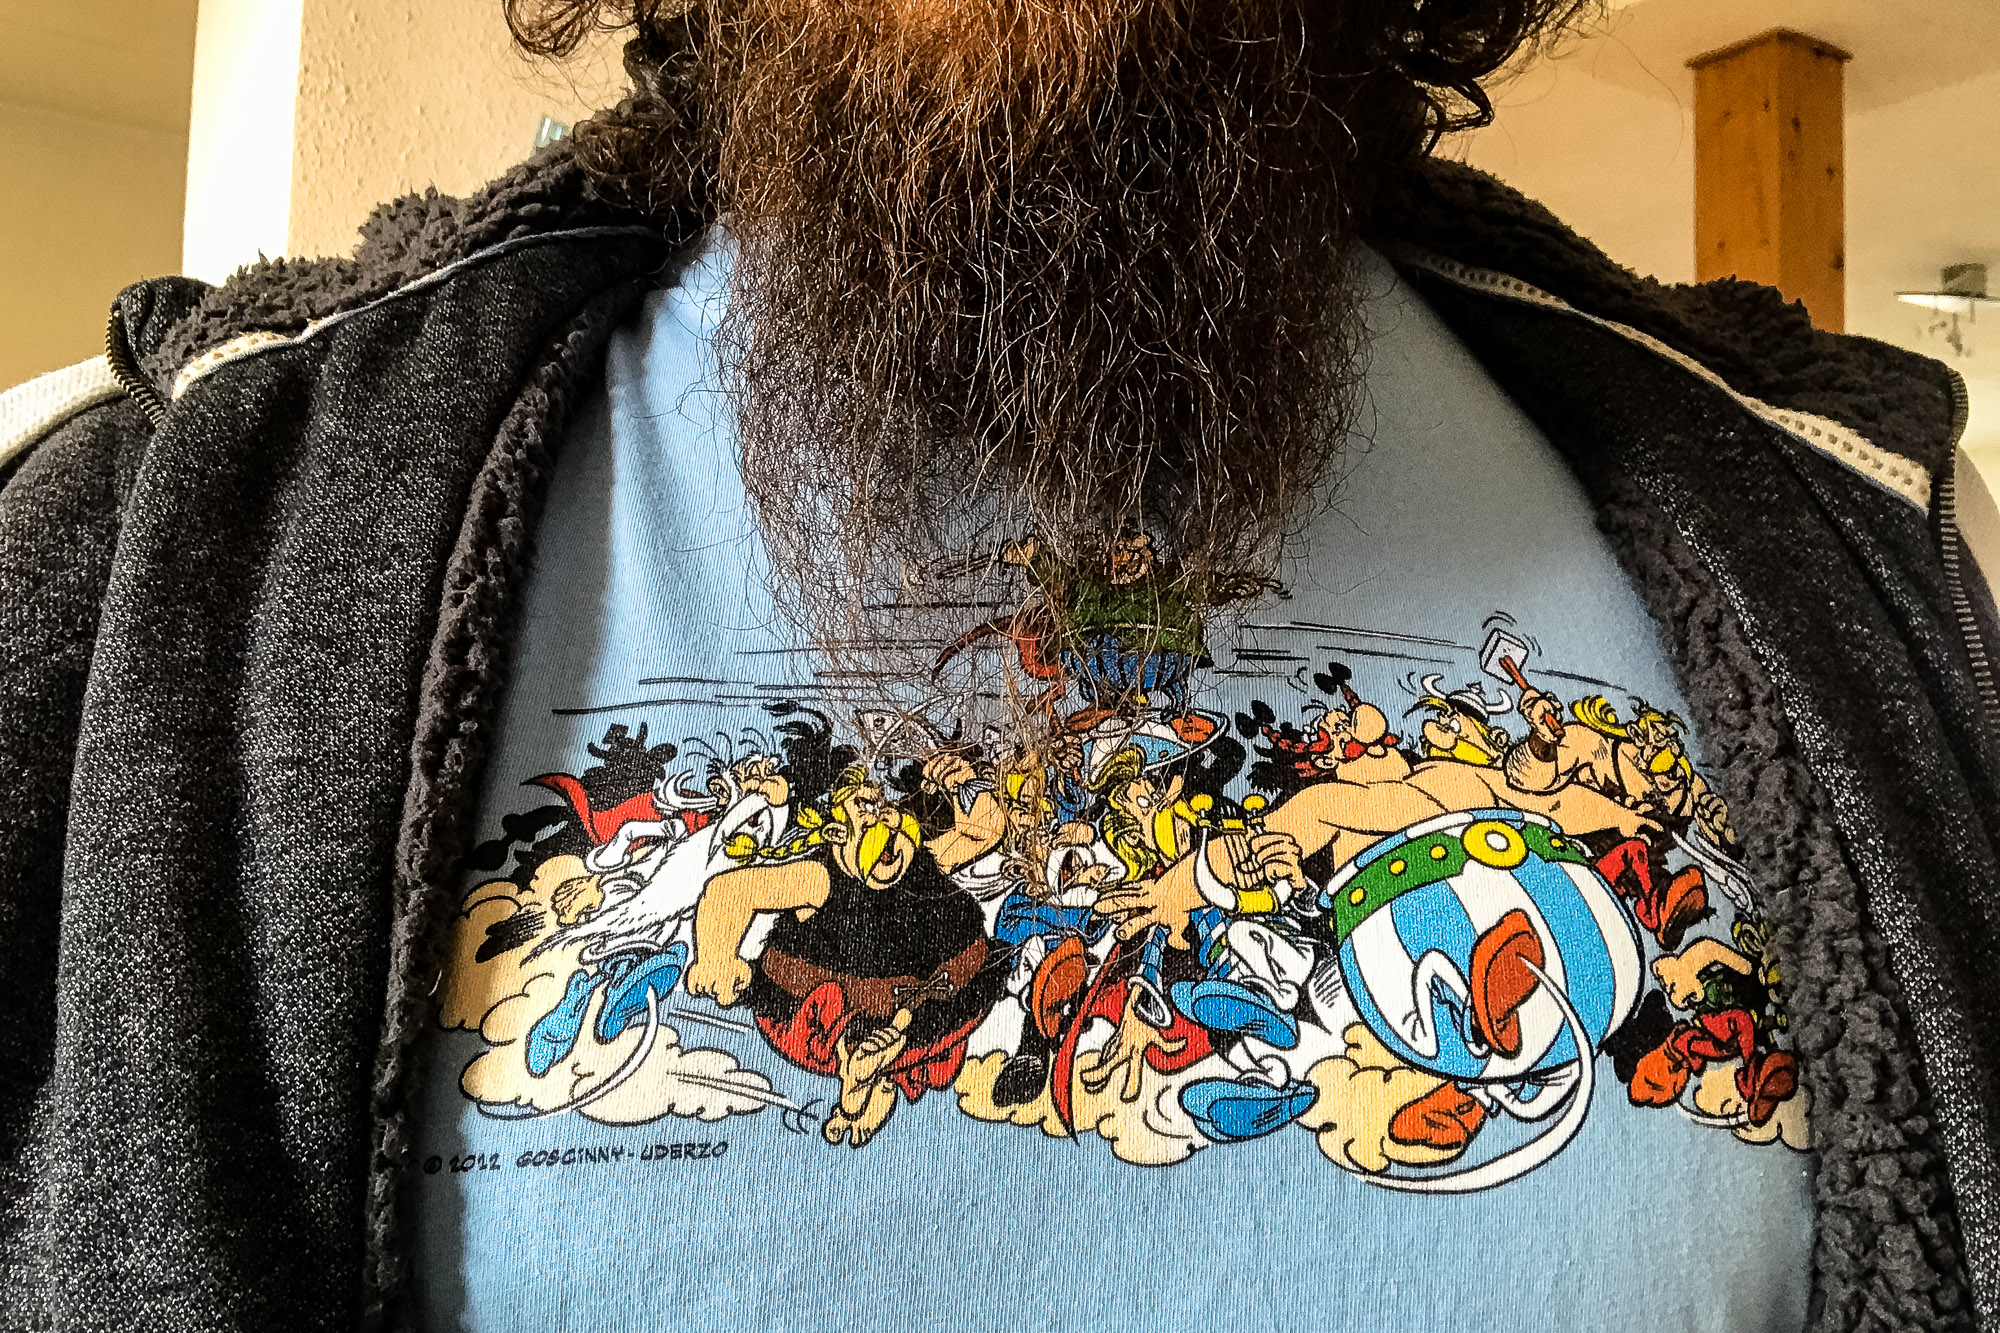 Asterix shirt